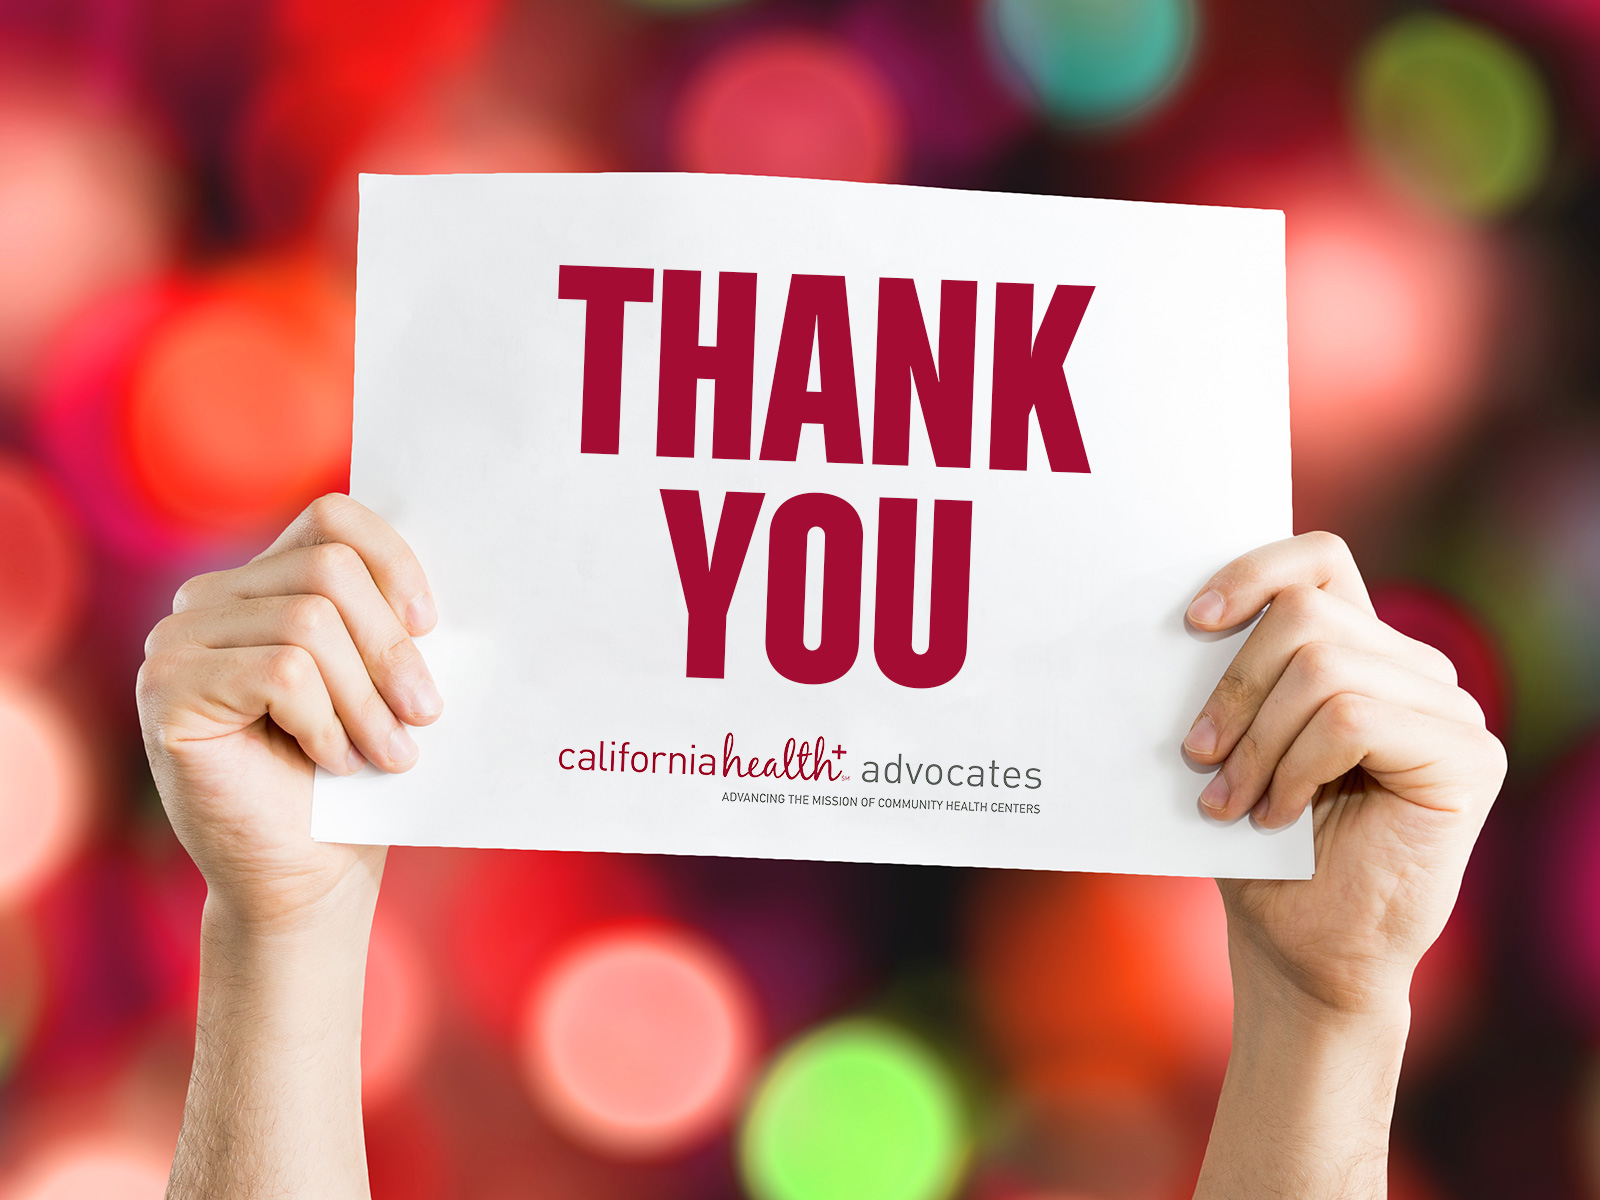 Thank You to CaliforniaHealth+ Advocates Donors! - Just over a year ago, in October 2017, the CaliforniaHealth+ Advocates Board voted to begin engaging politically by endorsing candidates in State Assembly and State Senate legislative electoral races. Participating directly in the political process allows Advocates an additional opportunity to advance the interests of community health centers and their patients.